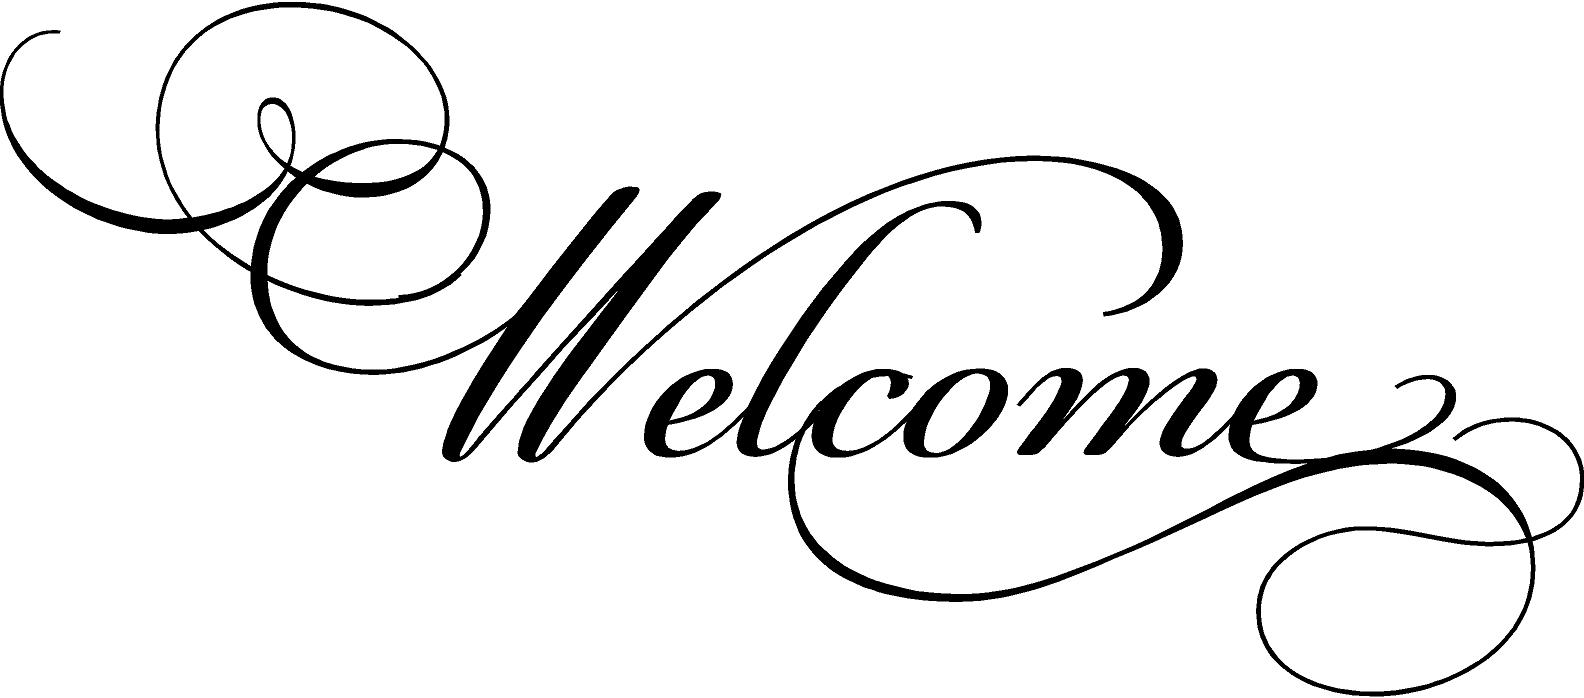 Welcome to our church clipart